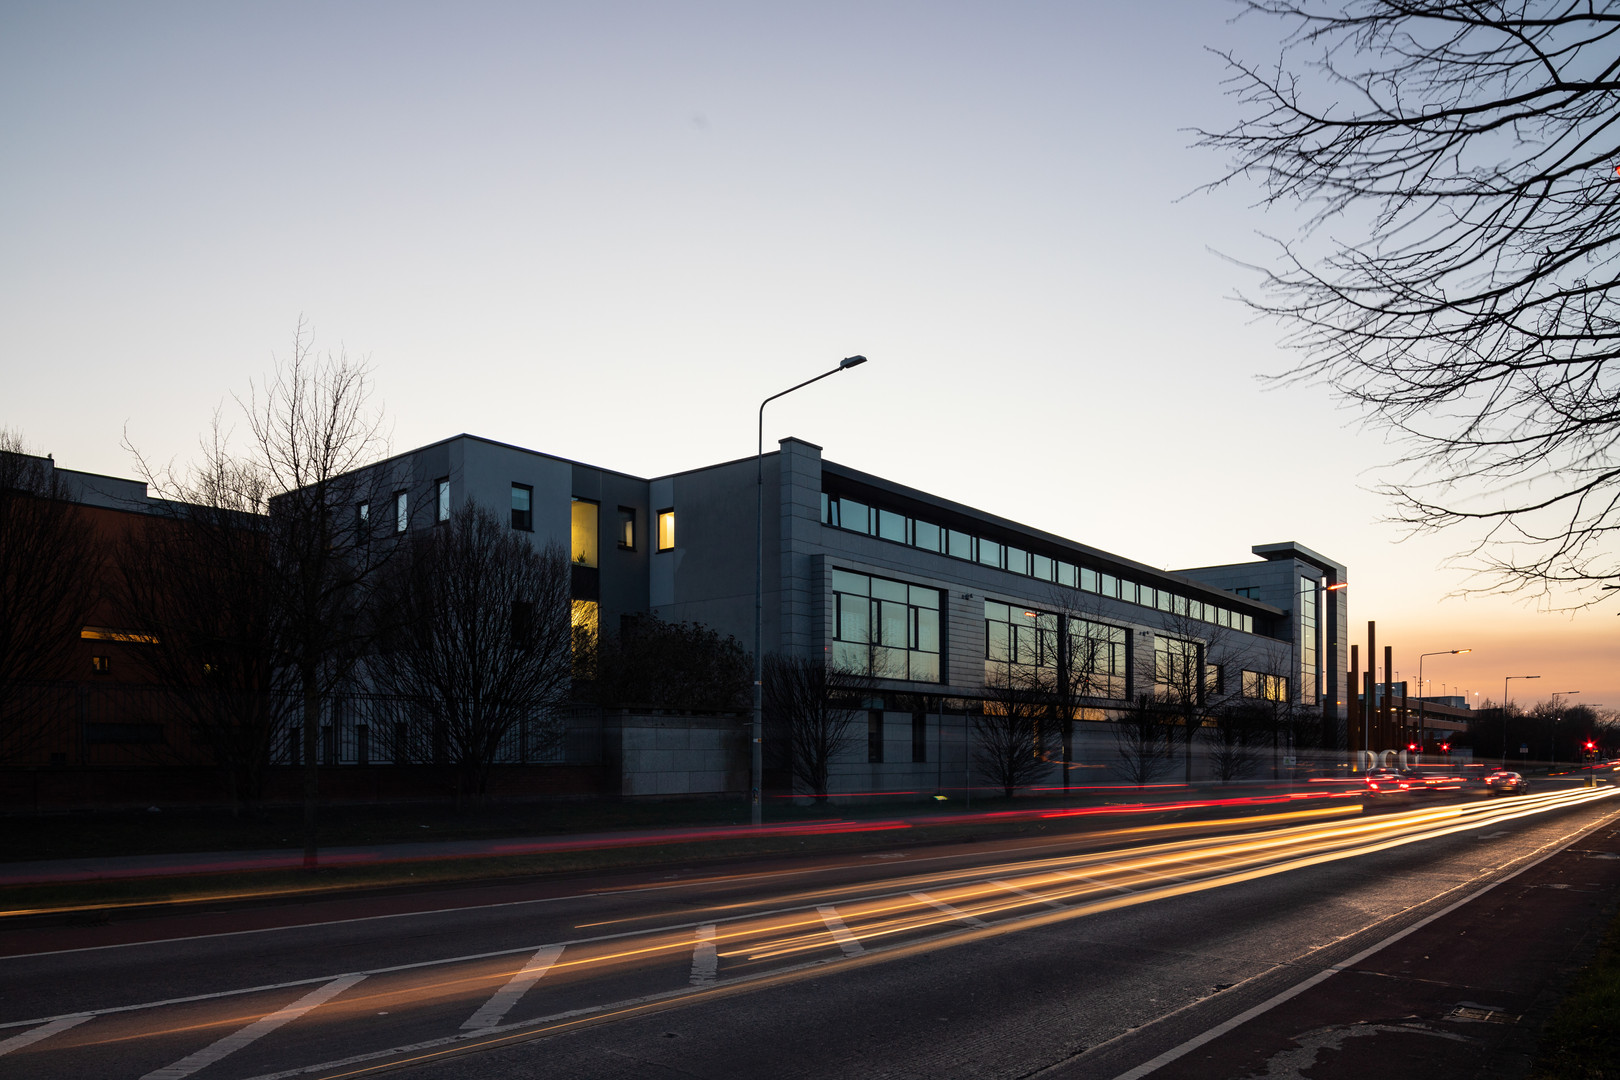 Exterior view at dusk of the School of Nursing in DCU, Dublin